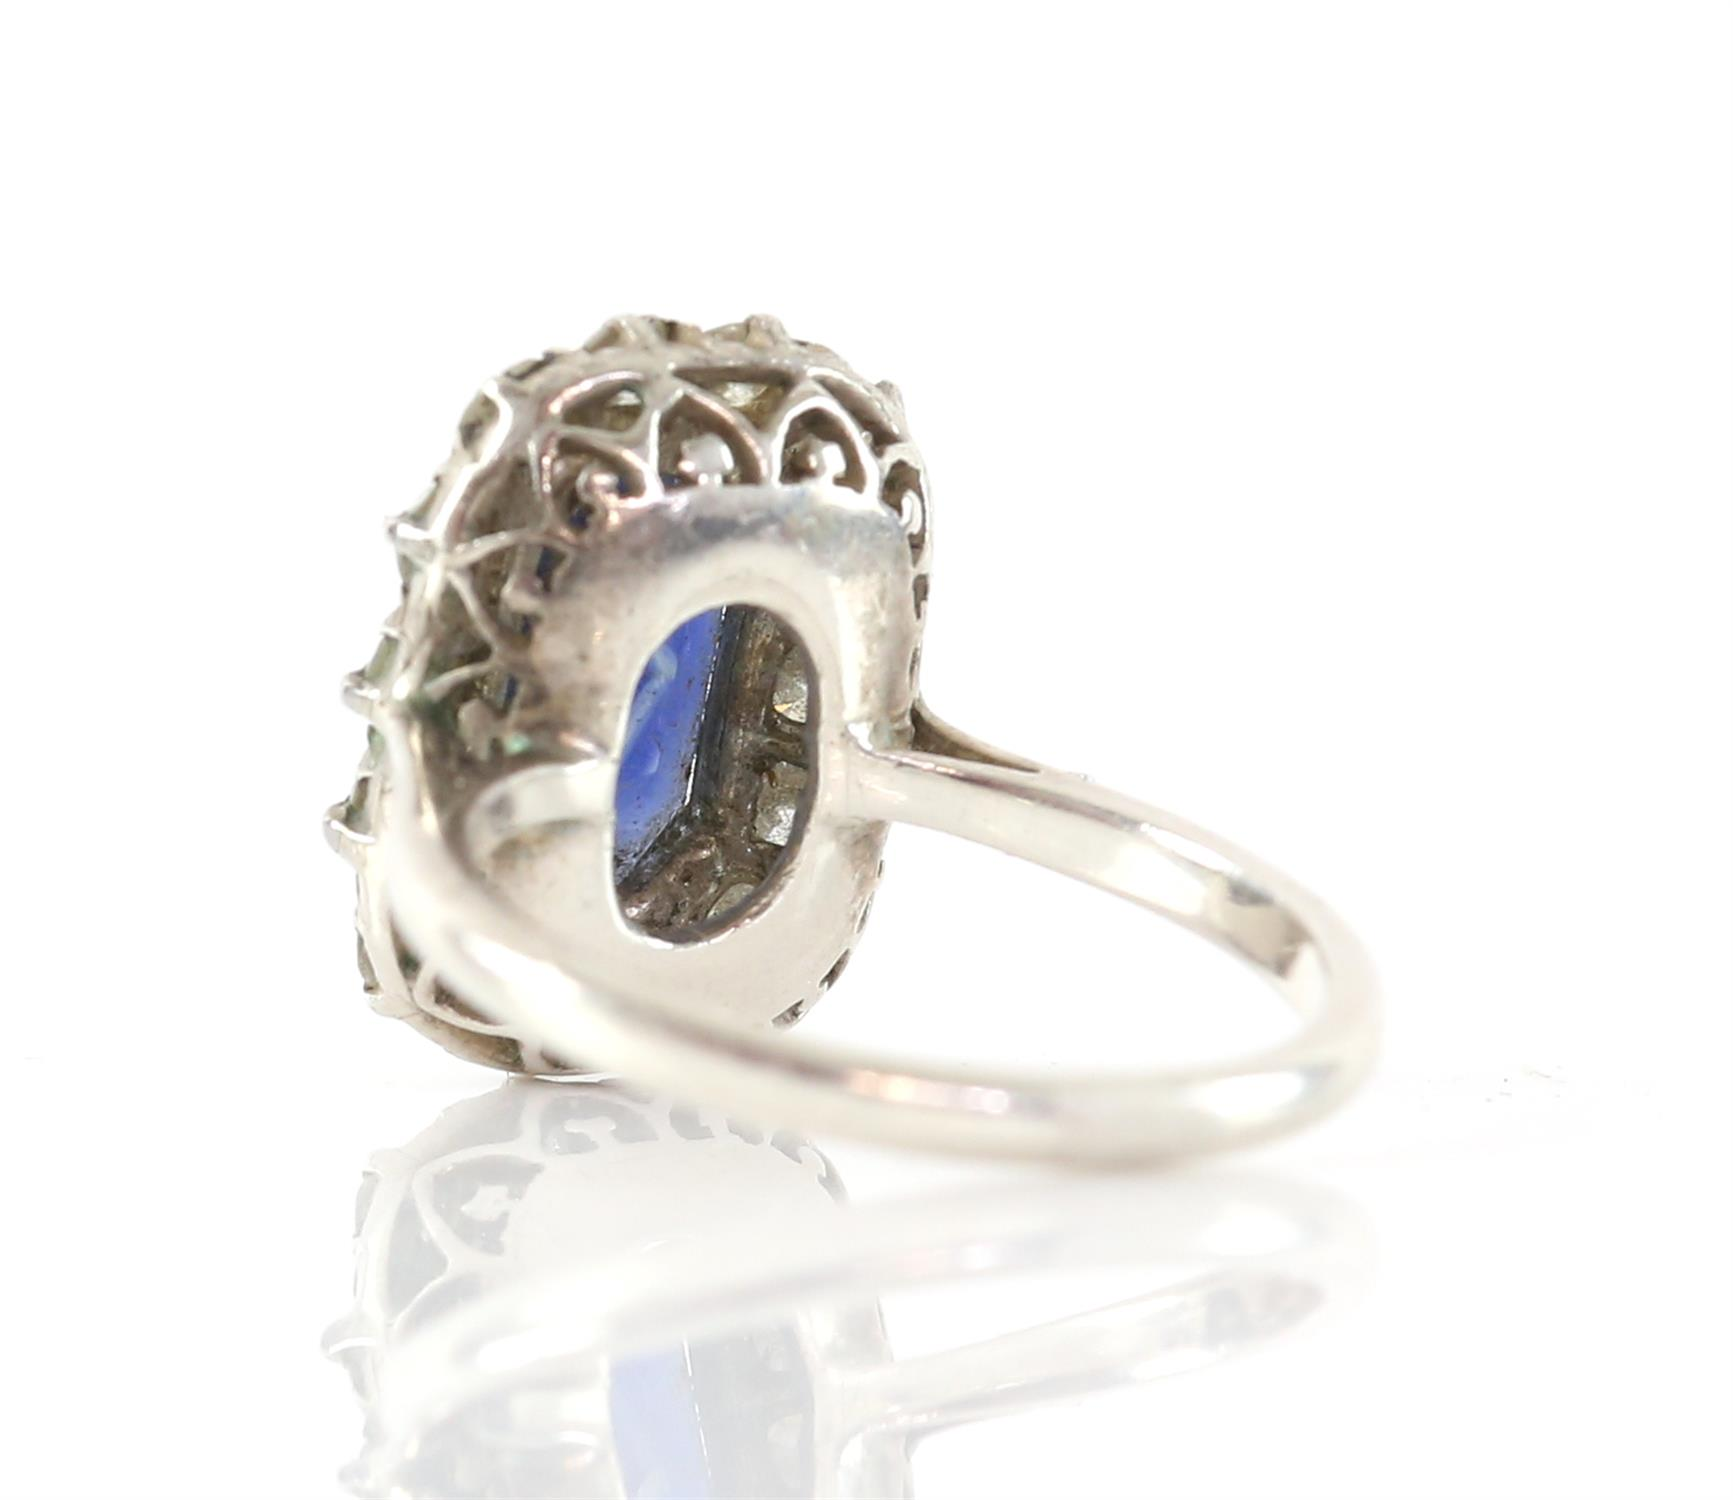 Sapphire and diamond cluster ring, with an emerald cut sapphire weighing an estimated 4.16 carats, - Image 2 of 3